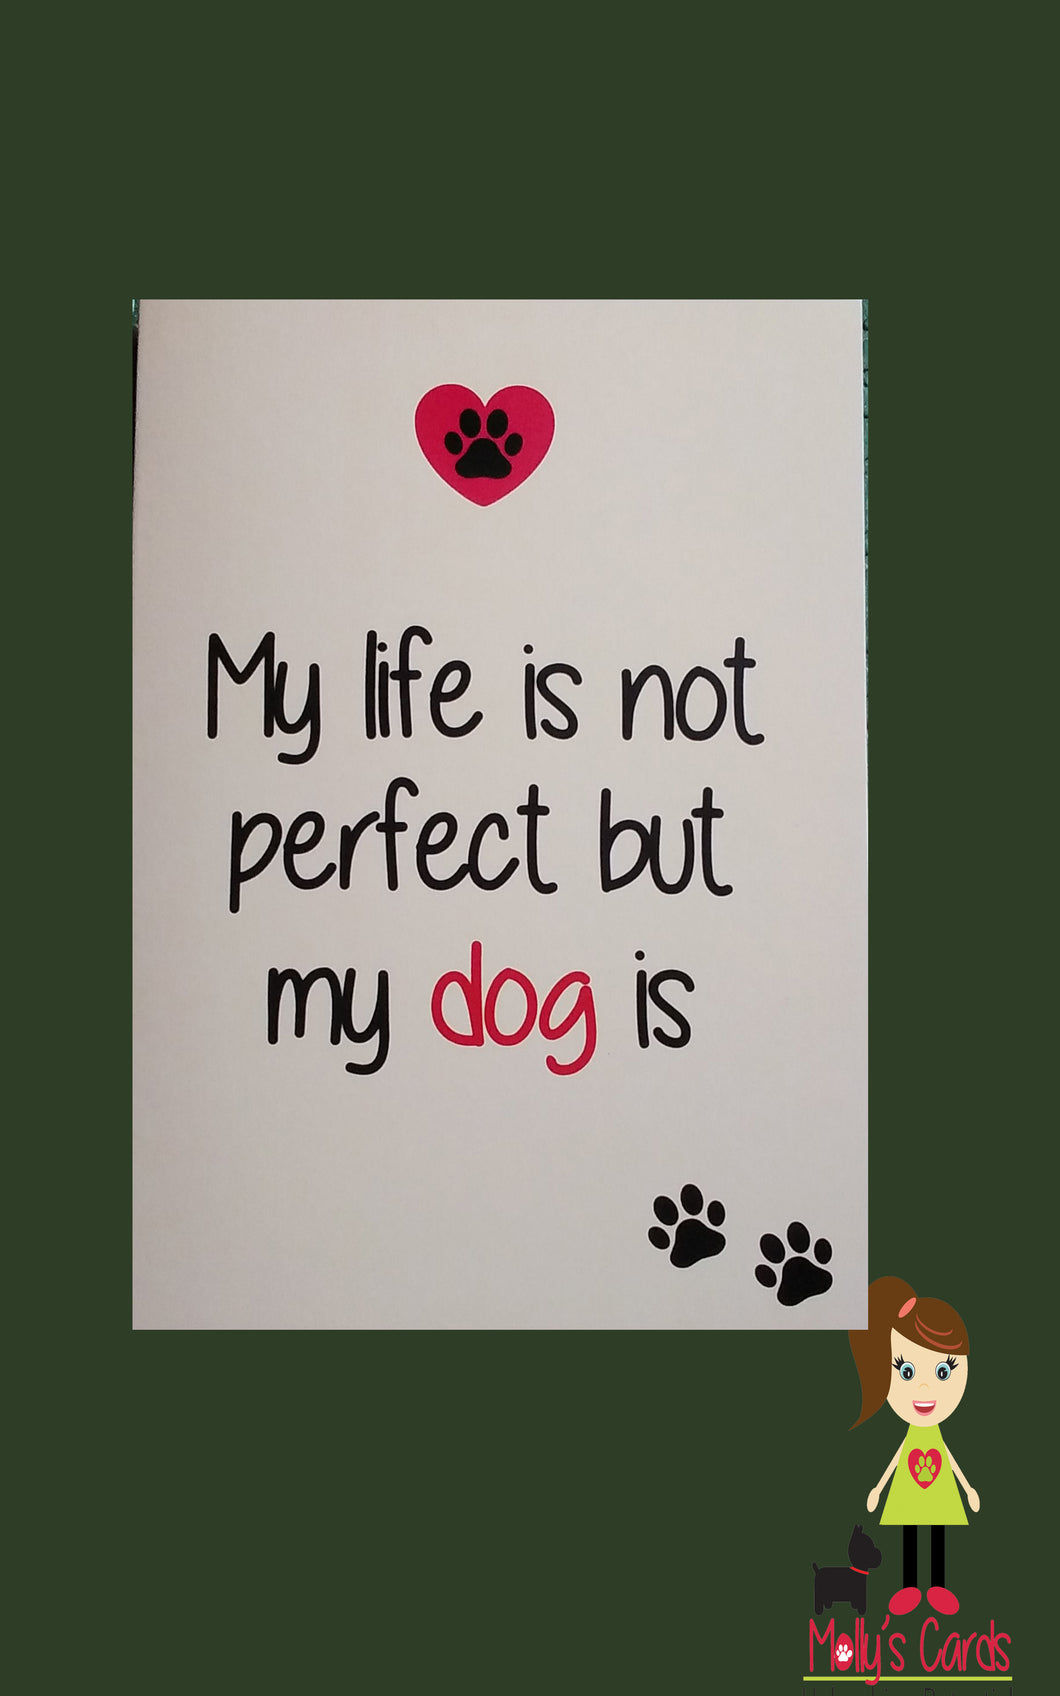 My life is not perfect but my dog is card